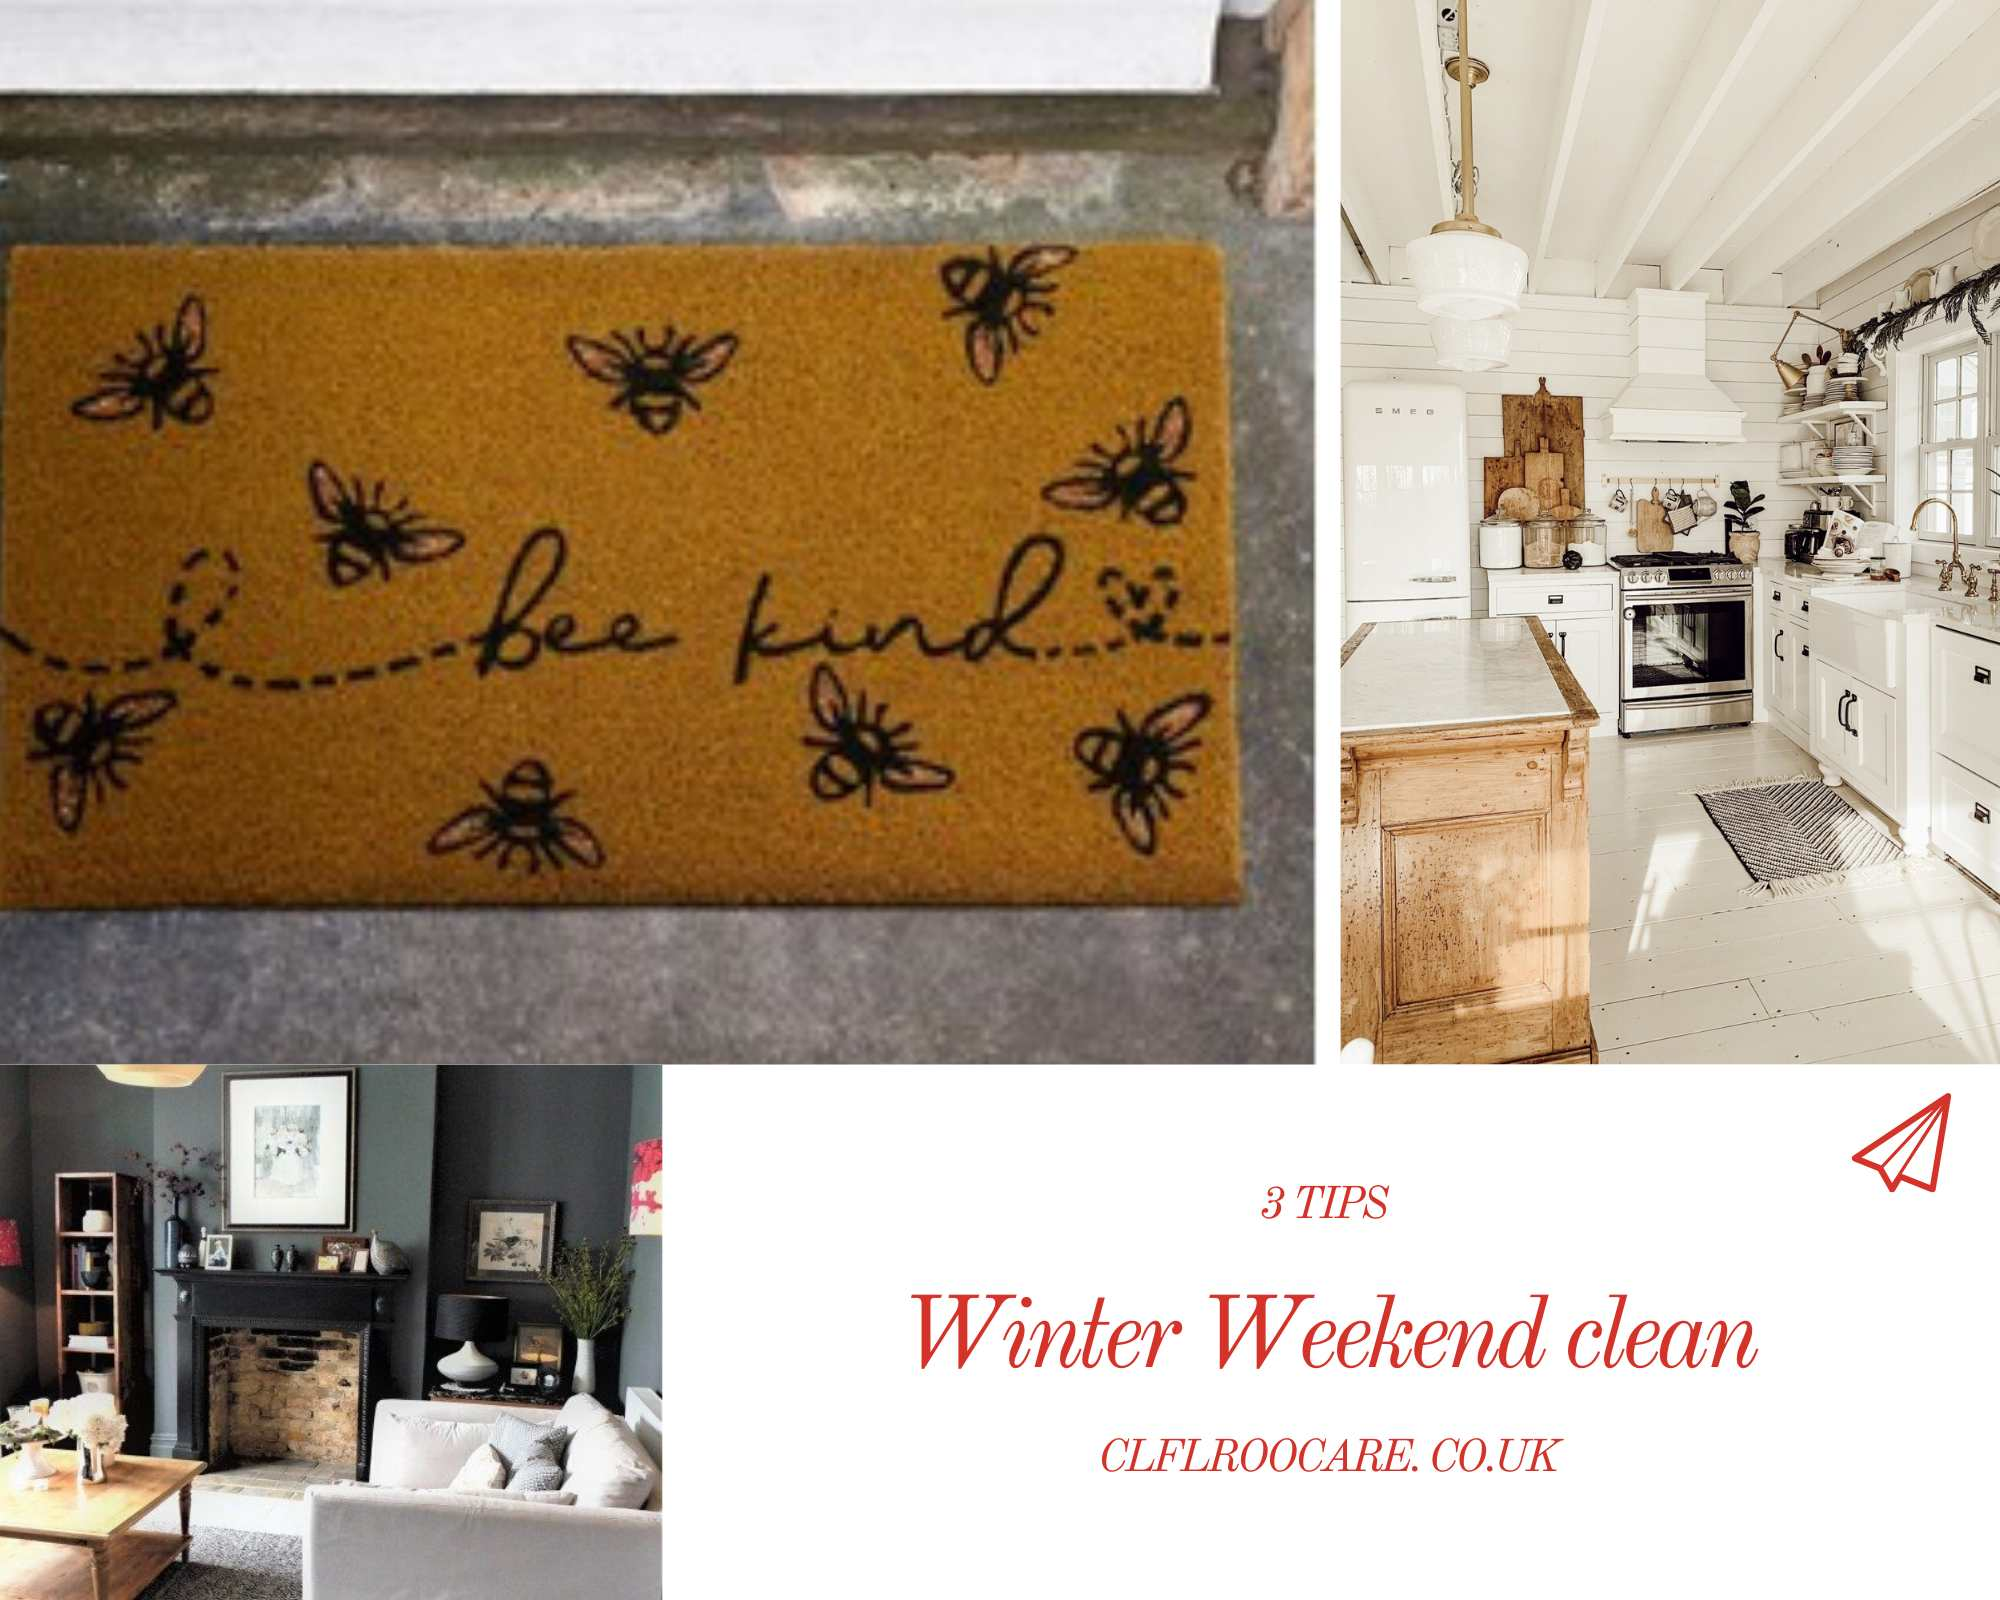 Top 3 tips on a good winter weekend clean